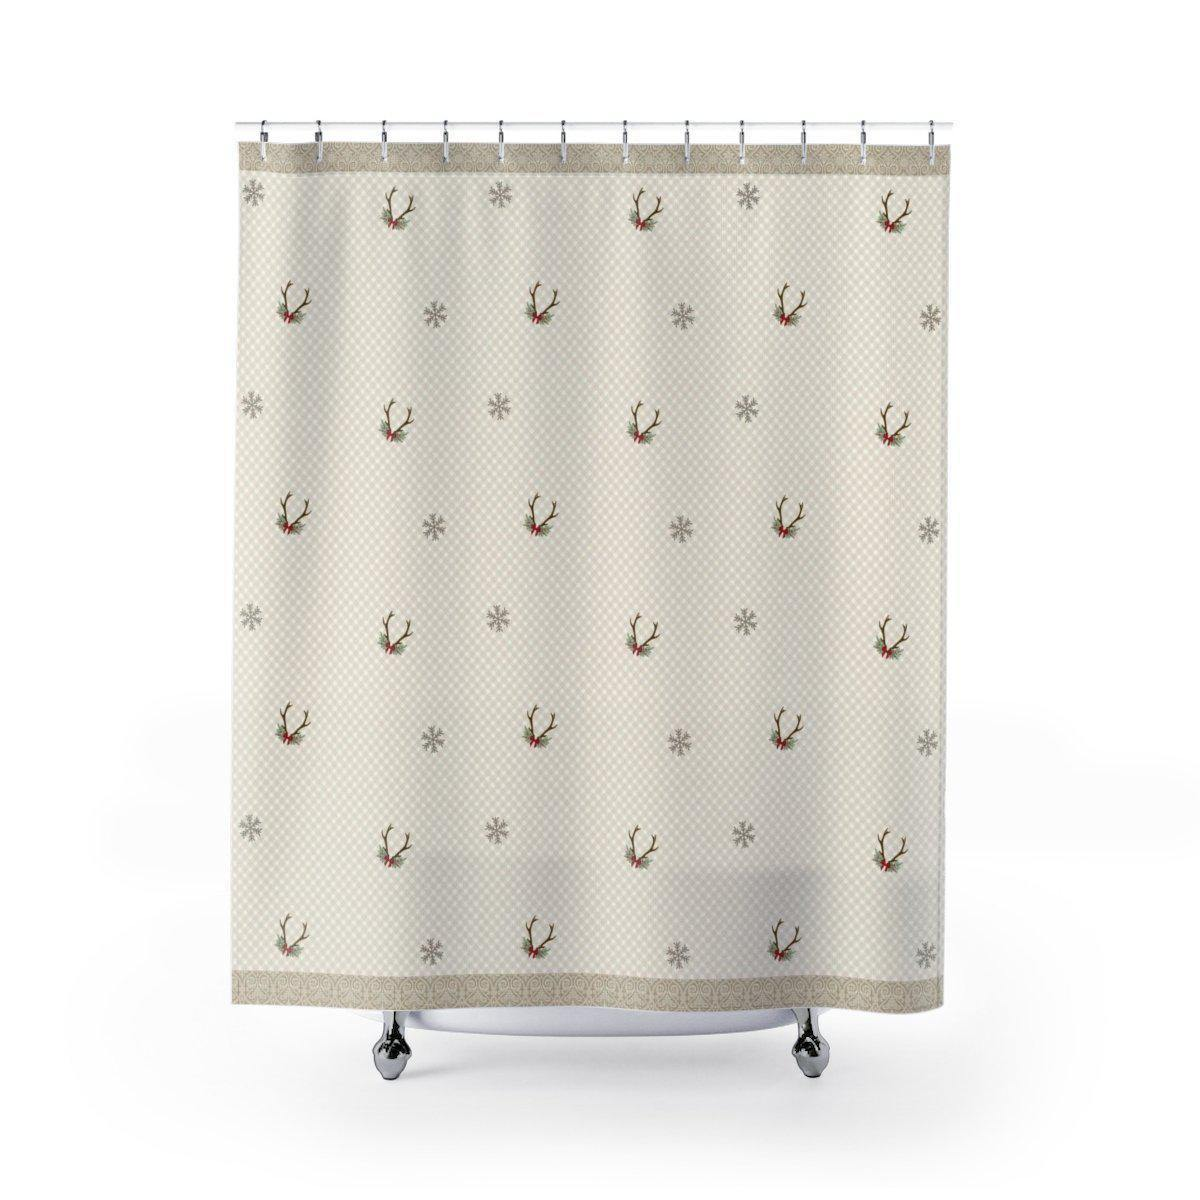 Neutral Christmas Shower Curtain - Shower Curtains - W.FRANCIS